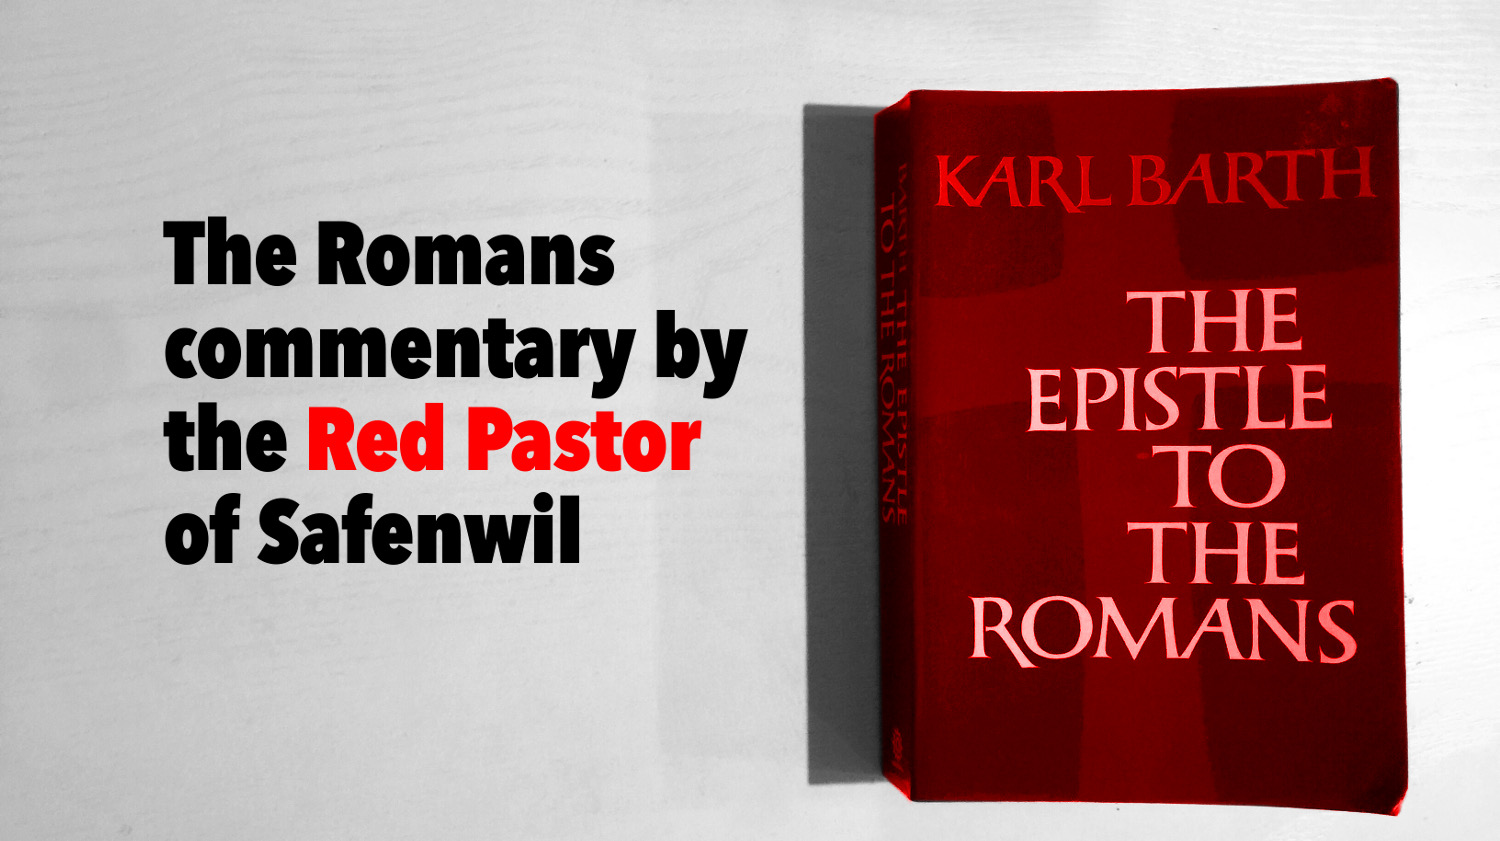 The romans commentary by the red pastor of safenwil karl barths a country pastor in safenwil switzerland when he wrote the first edition of his landmark commentary the epistle to the romans der romerbrief 1919 sciox Gallery